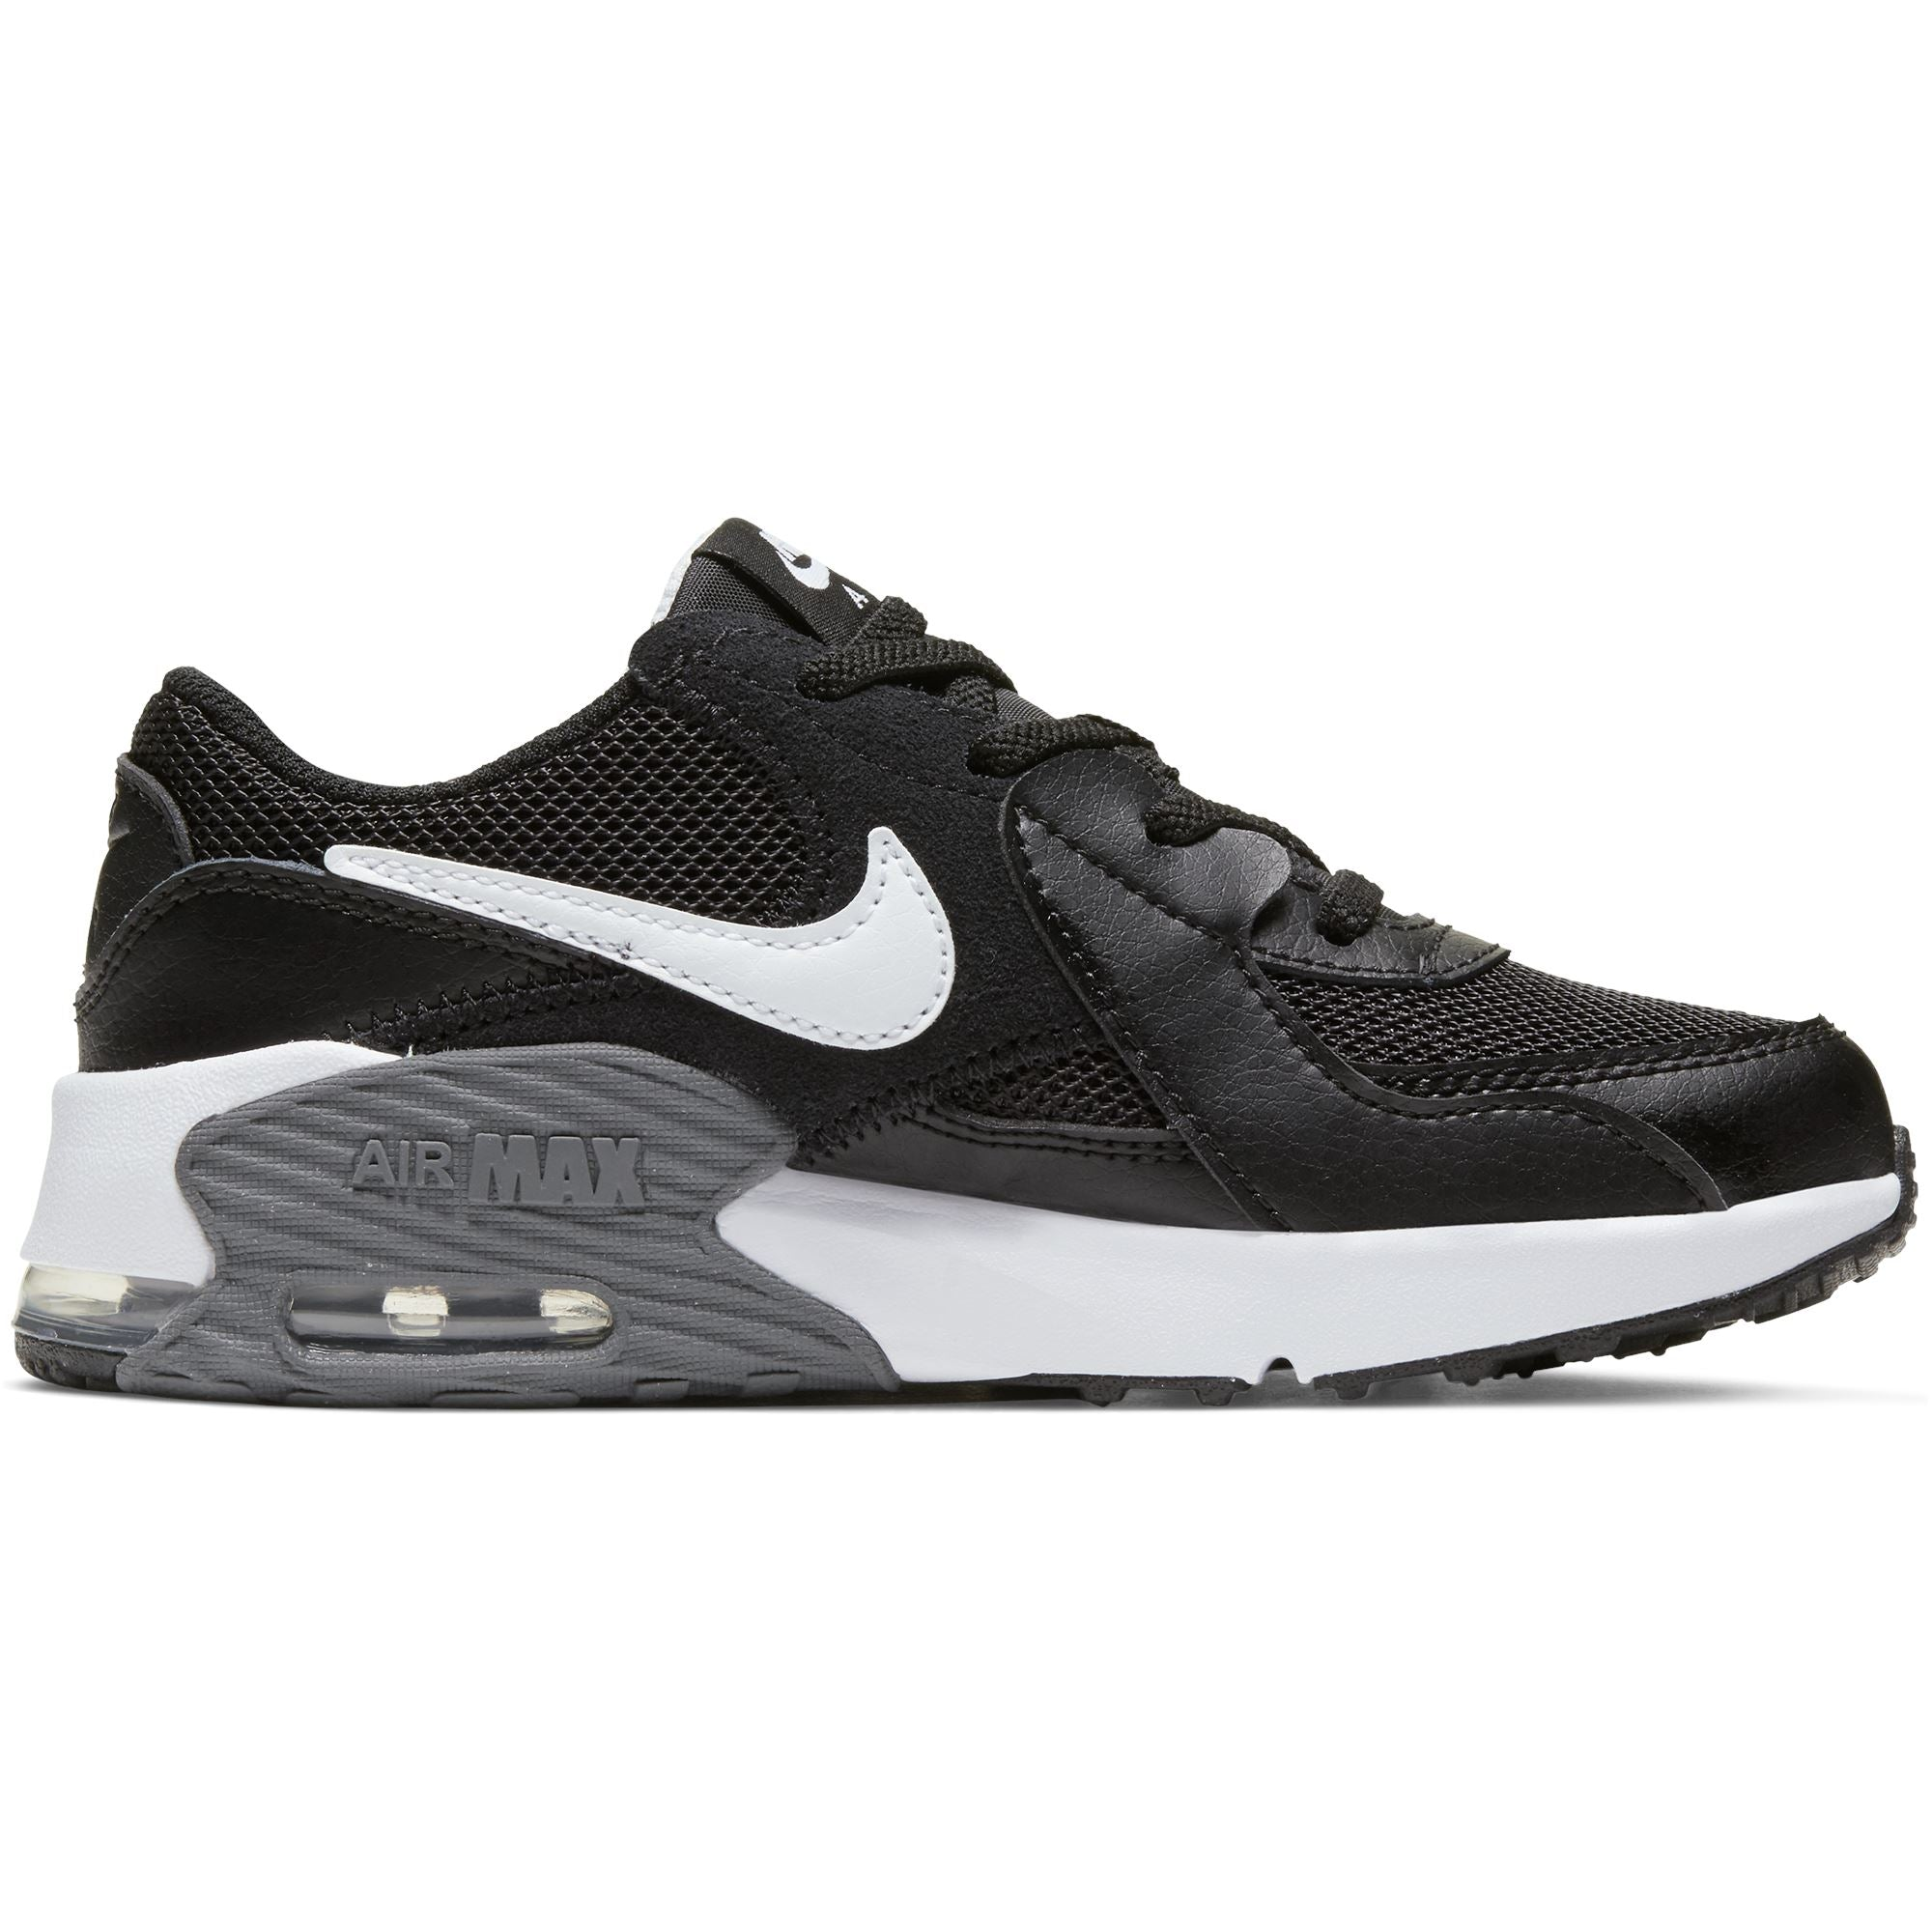 Nike Kids Air Max Excee Little Kids Shoe - Black/White-Dark Grey SP-Footwear-Kids Nike